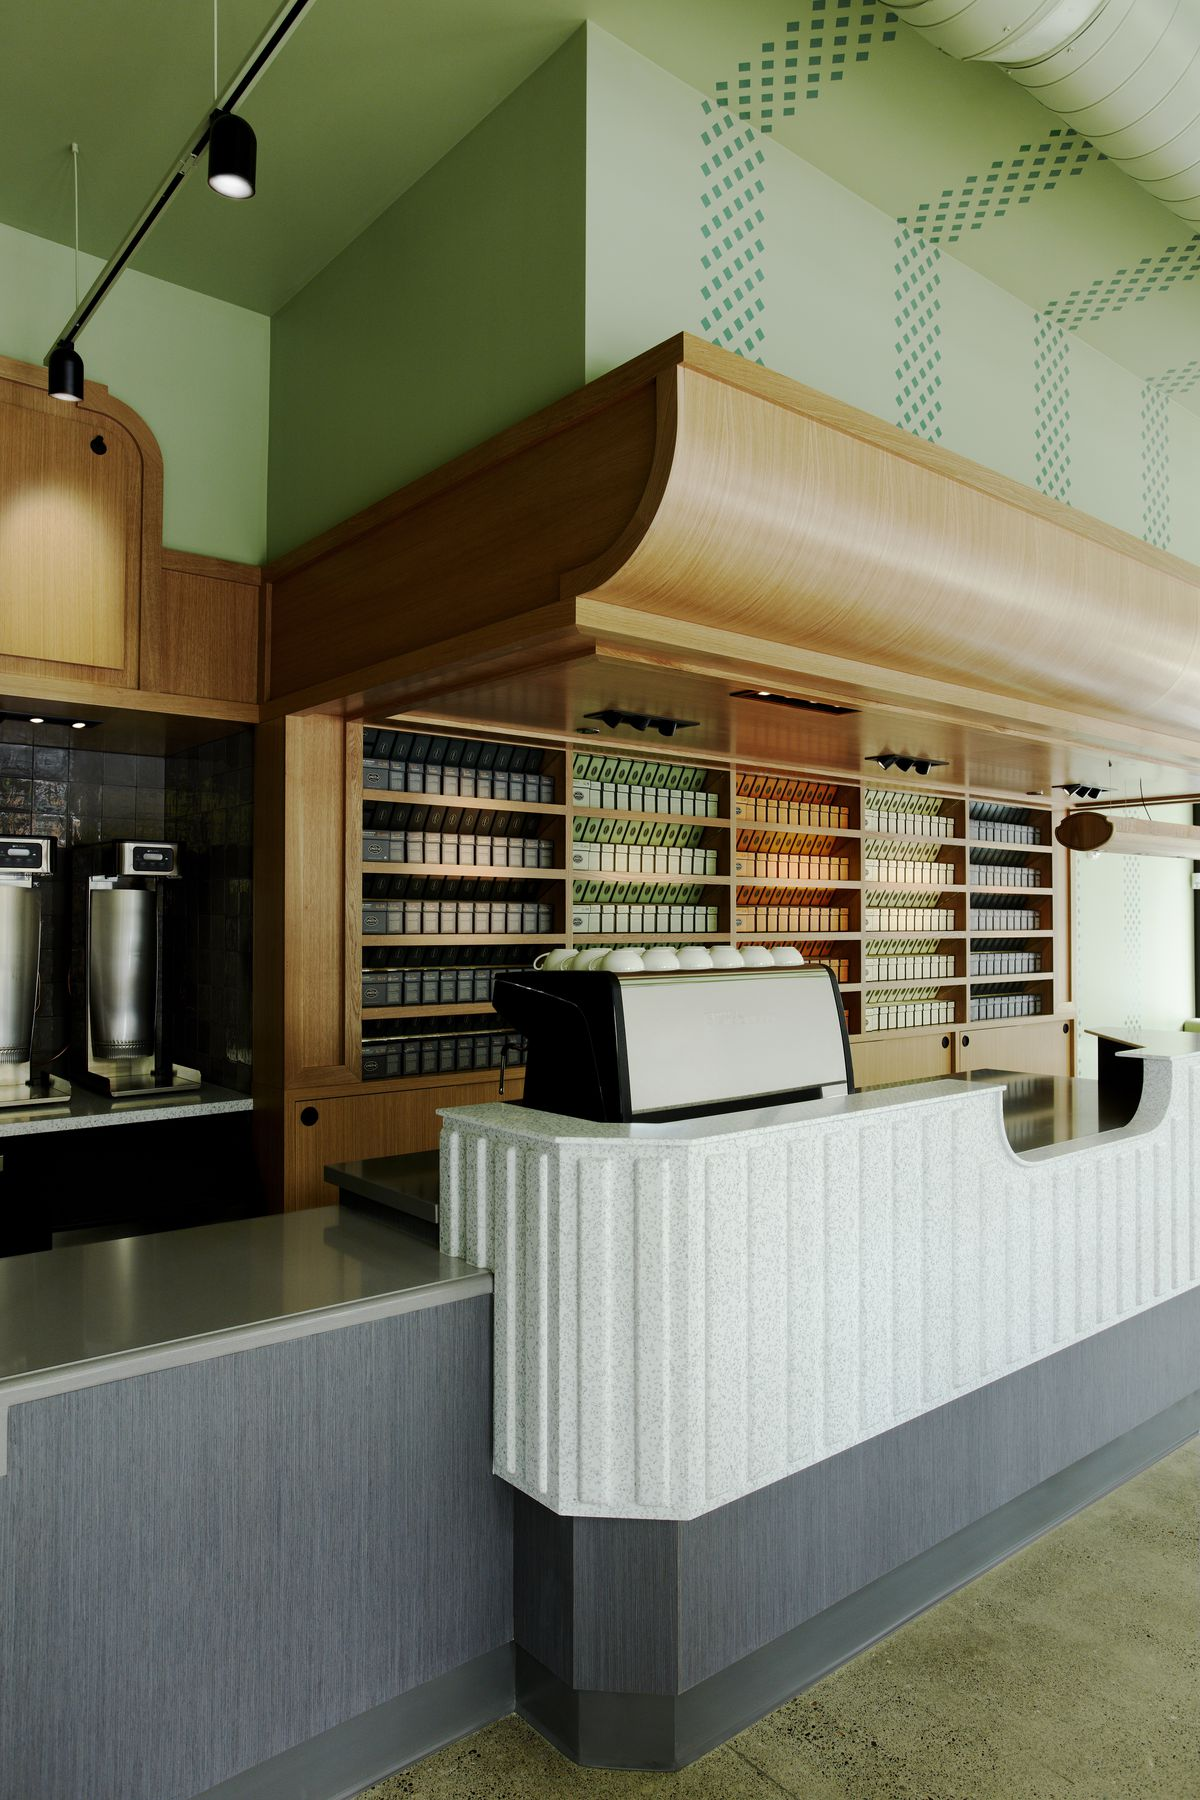 A white counter houses an expresso machine, with boxes of Steven Smith teas in the back.